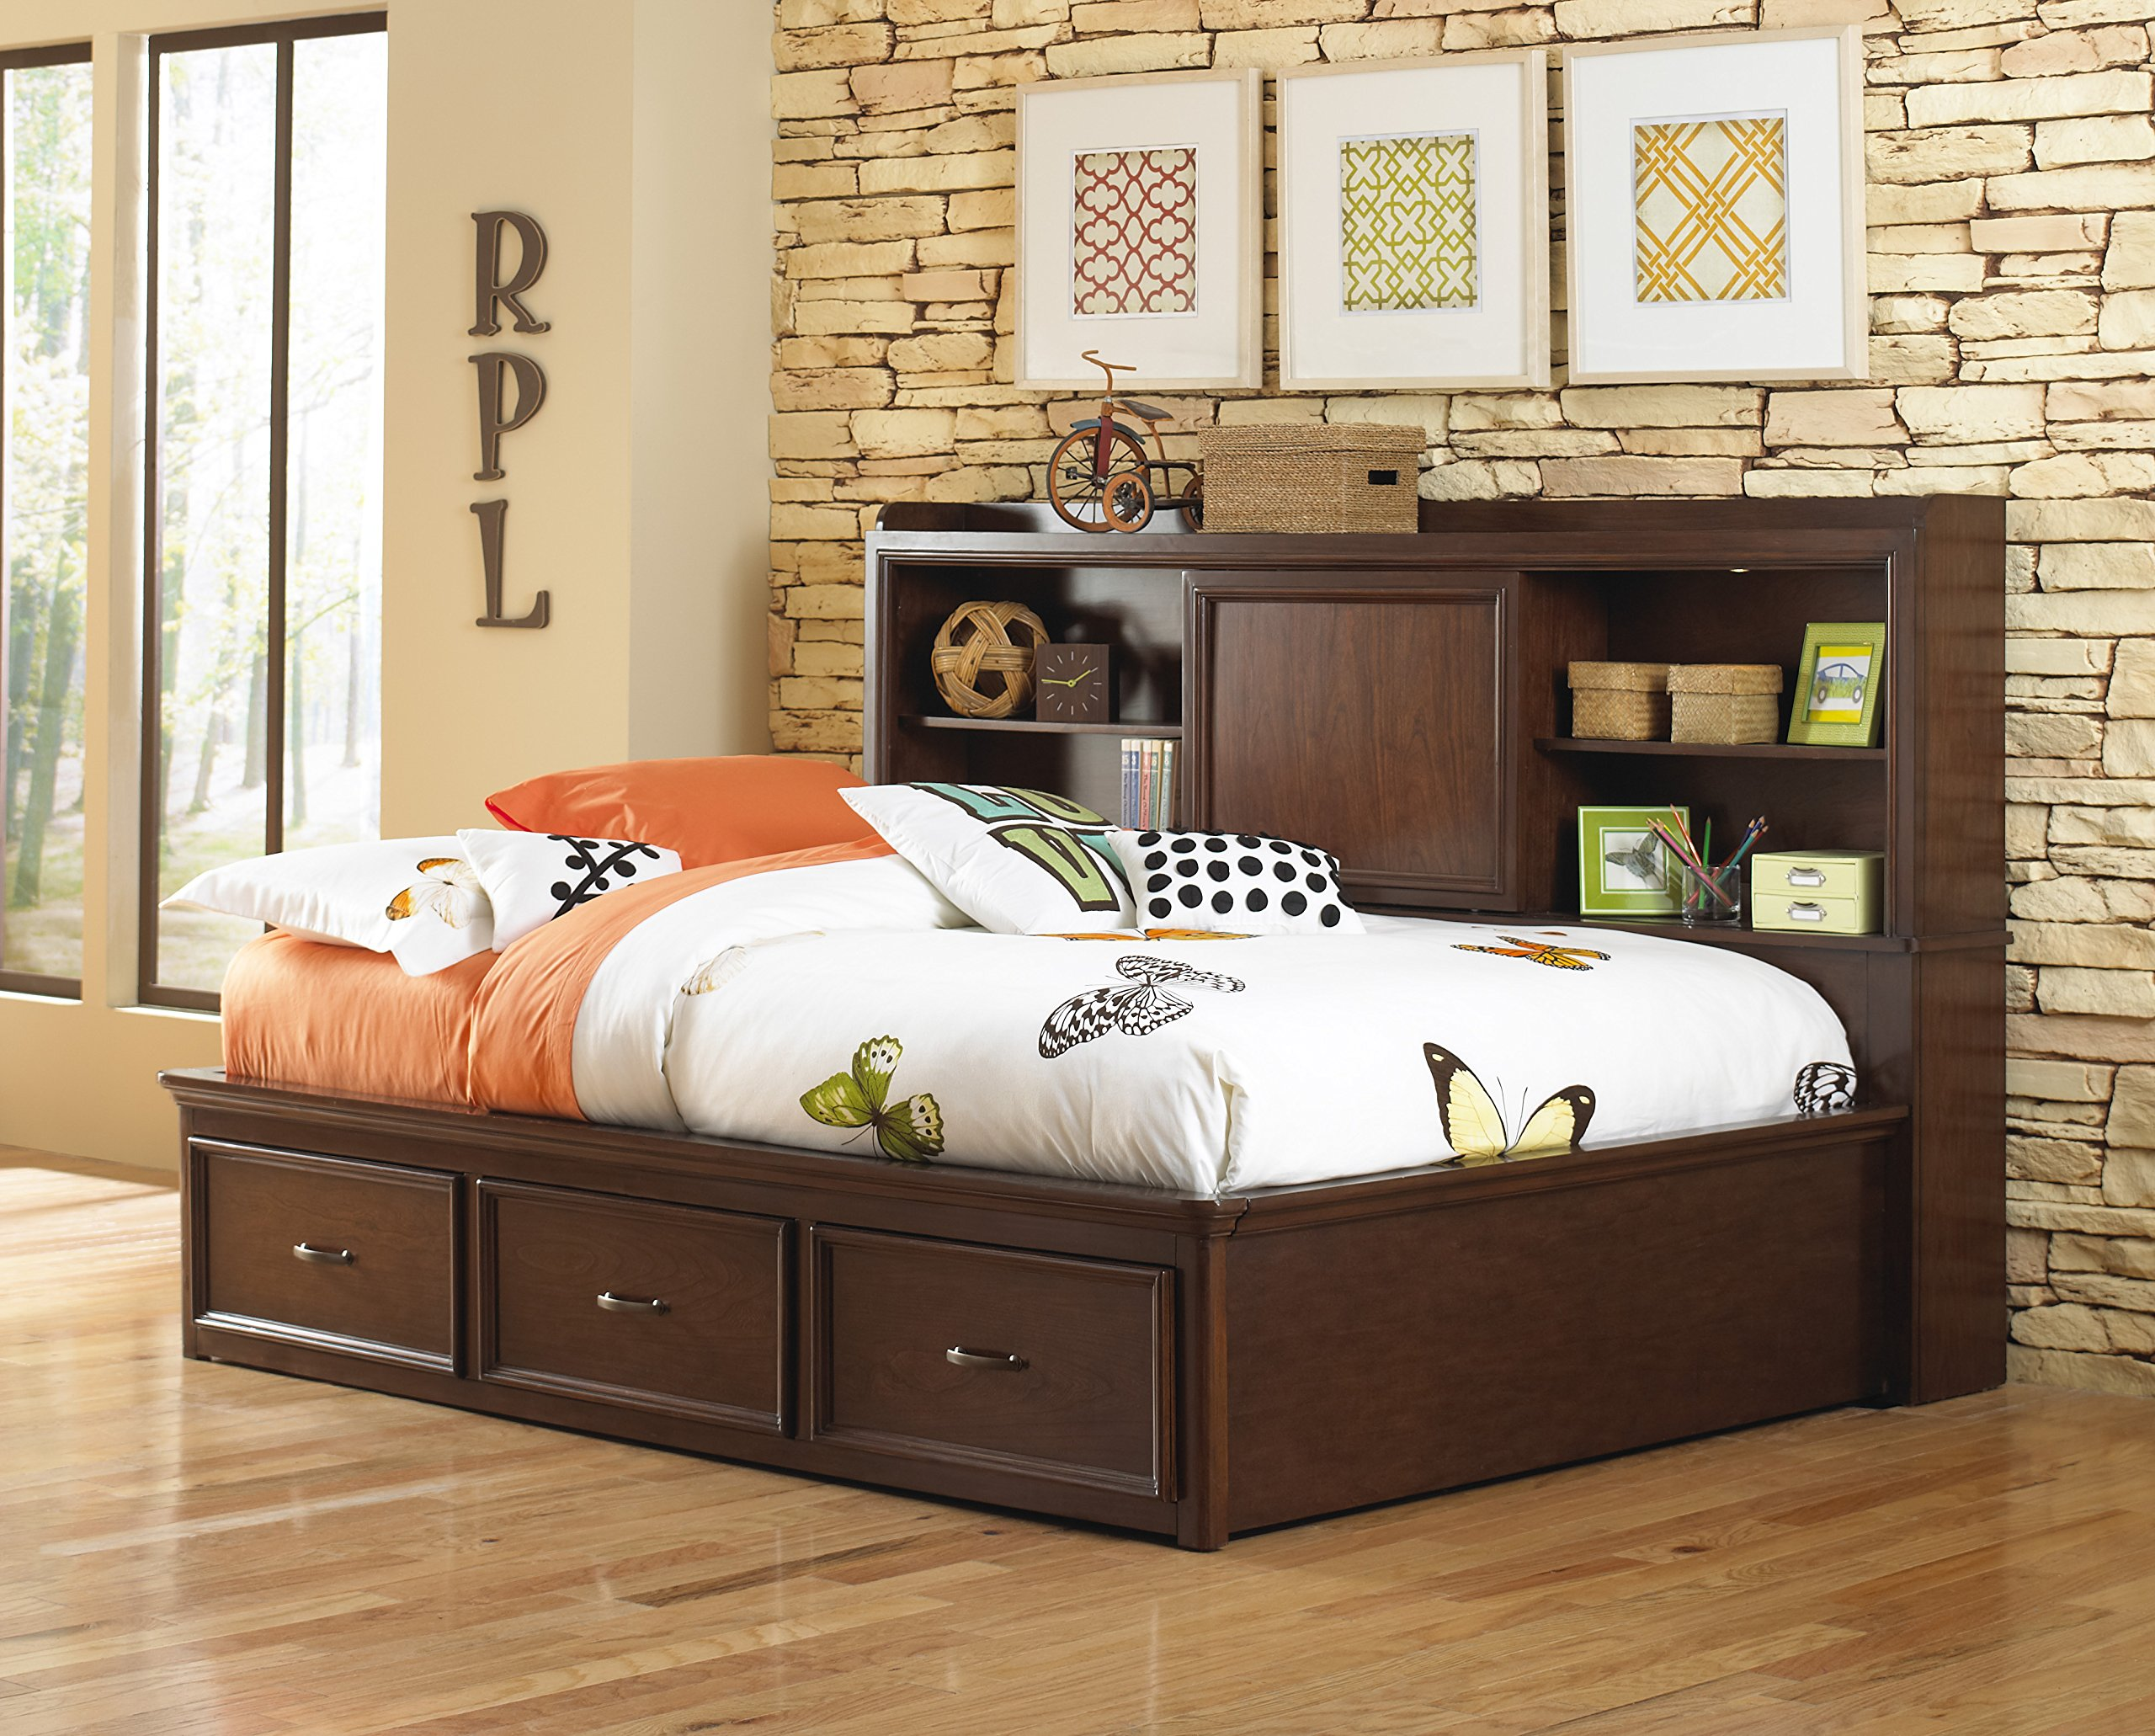 Pulaski 8468-BR-K13 Expedition Youth Lounge Bed, Full